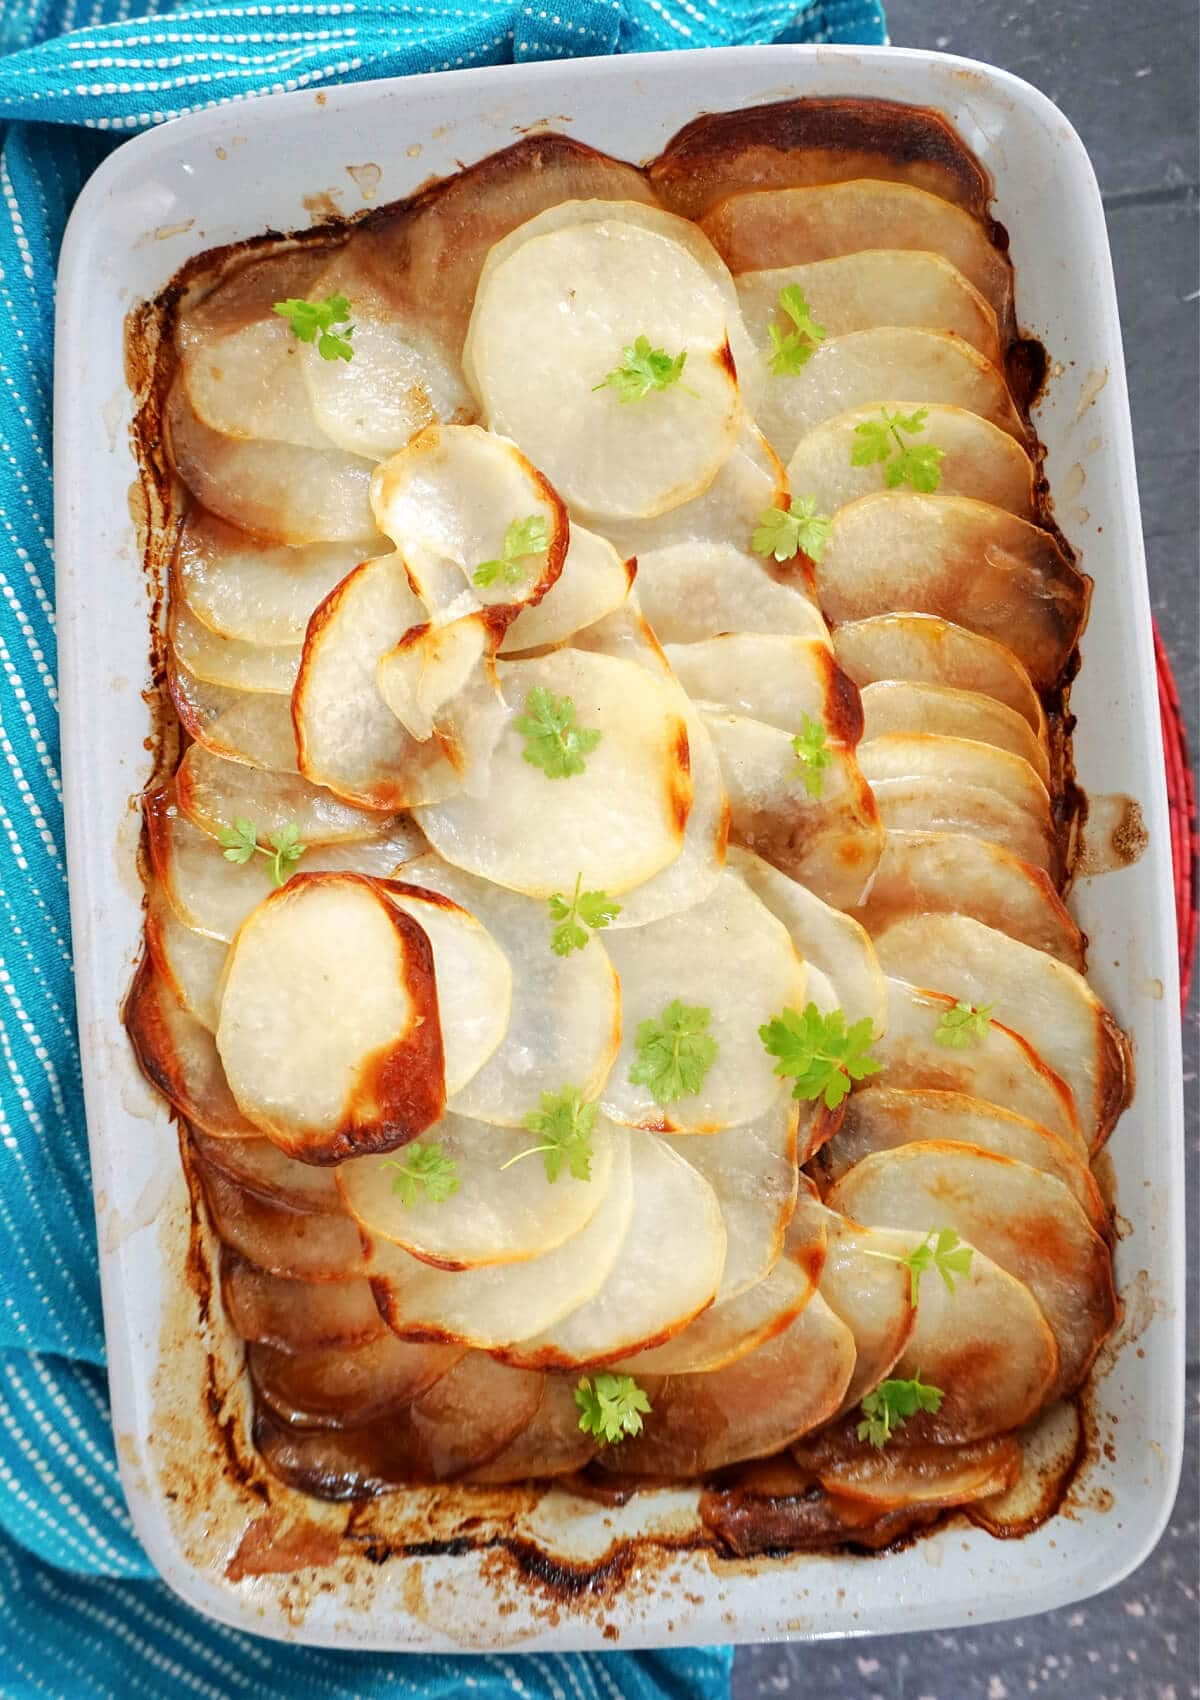 Overhead shot of a dish with  hotpot topped with sliced potatoes